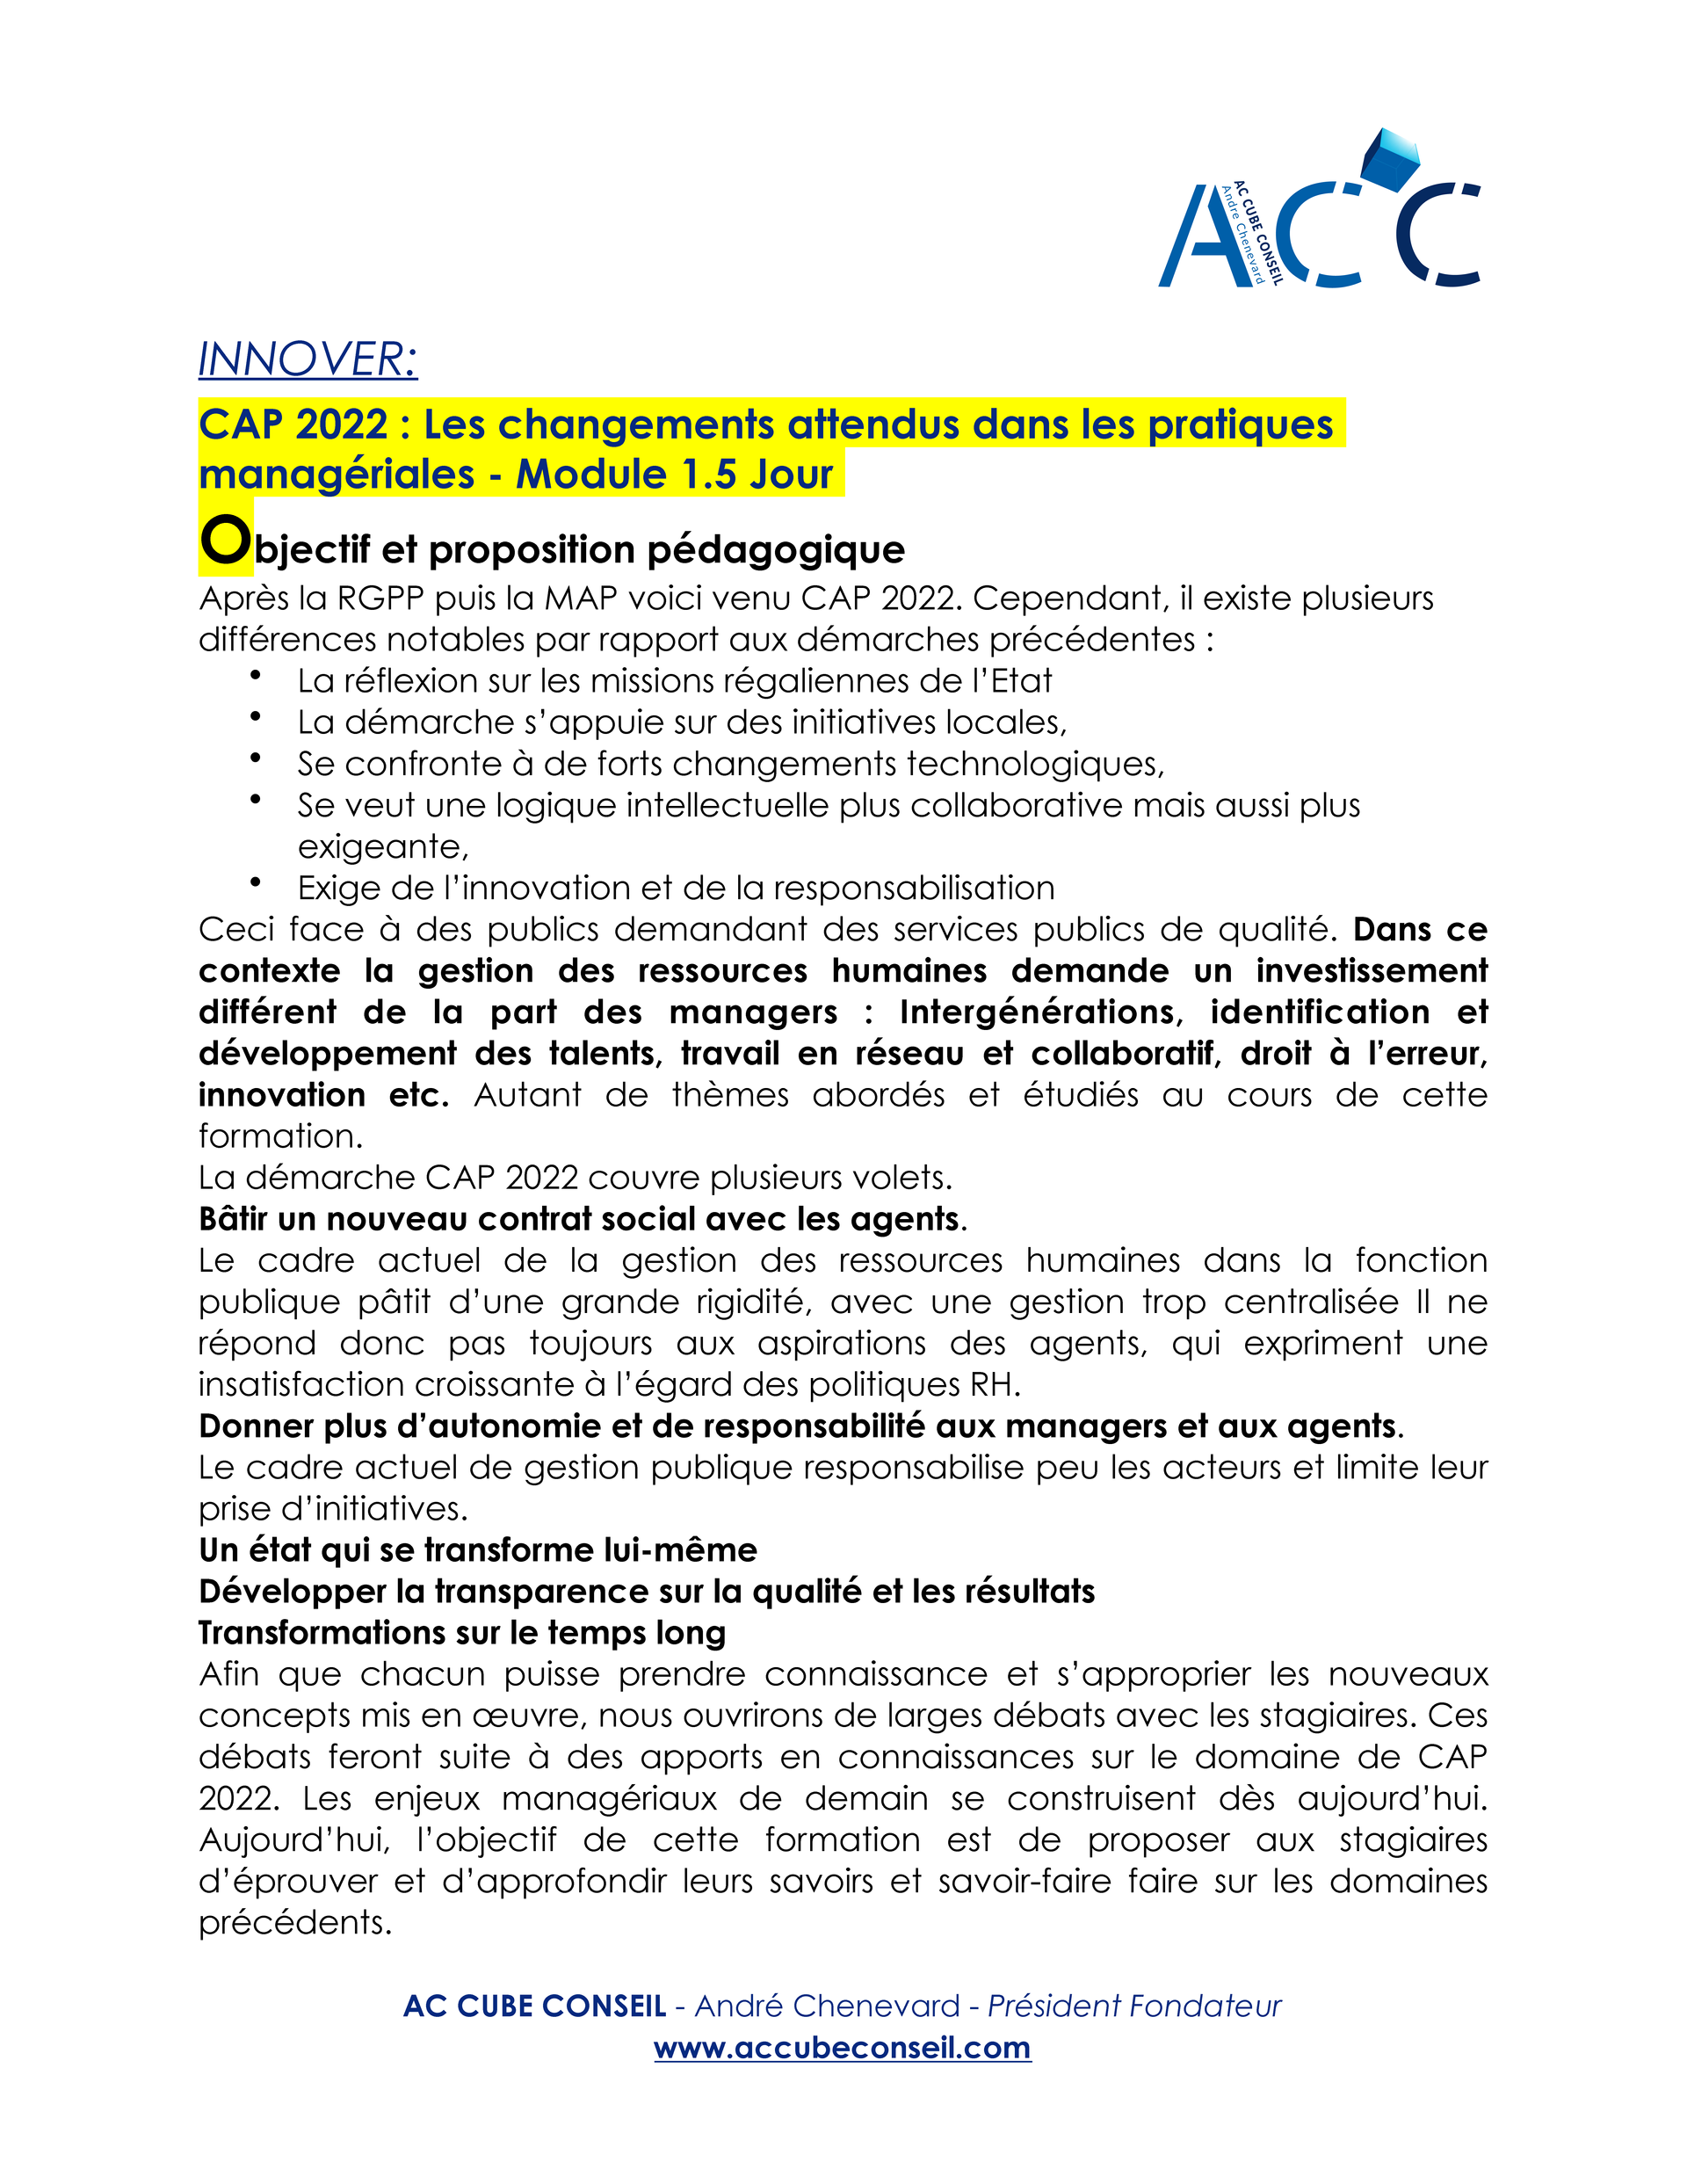 AC CUBE CONSEIL - INNOVER_Page_02.png